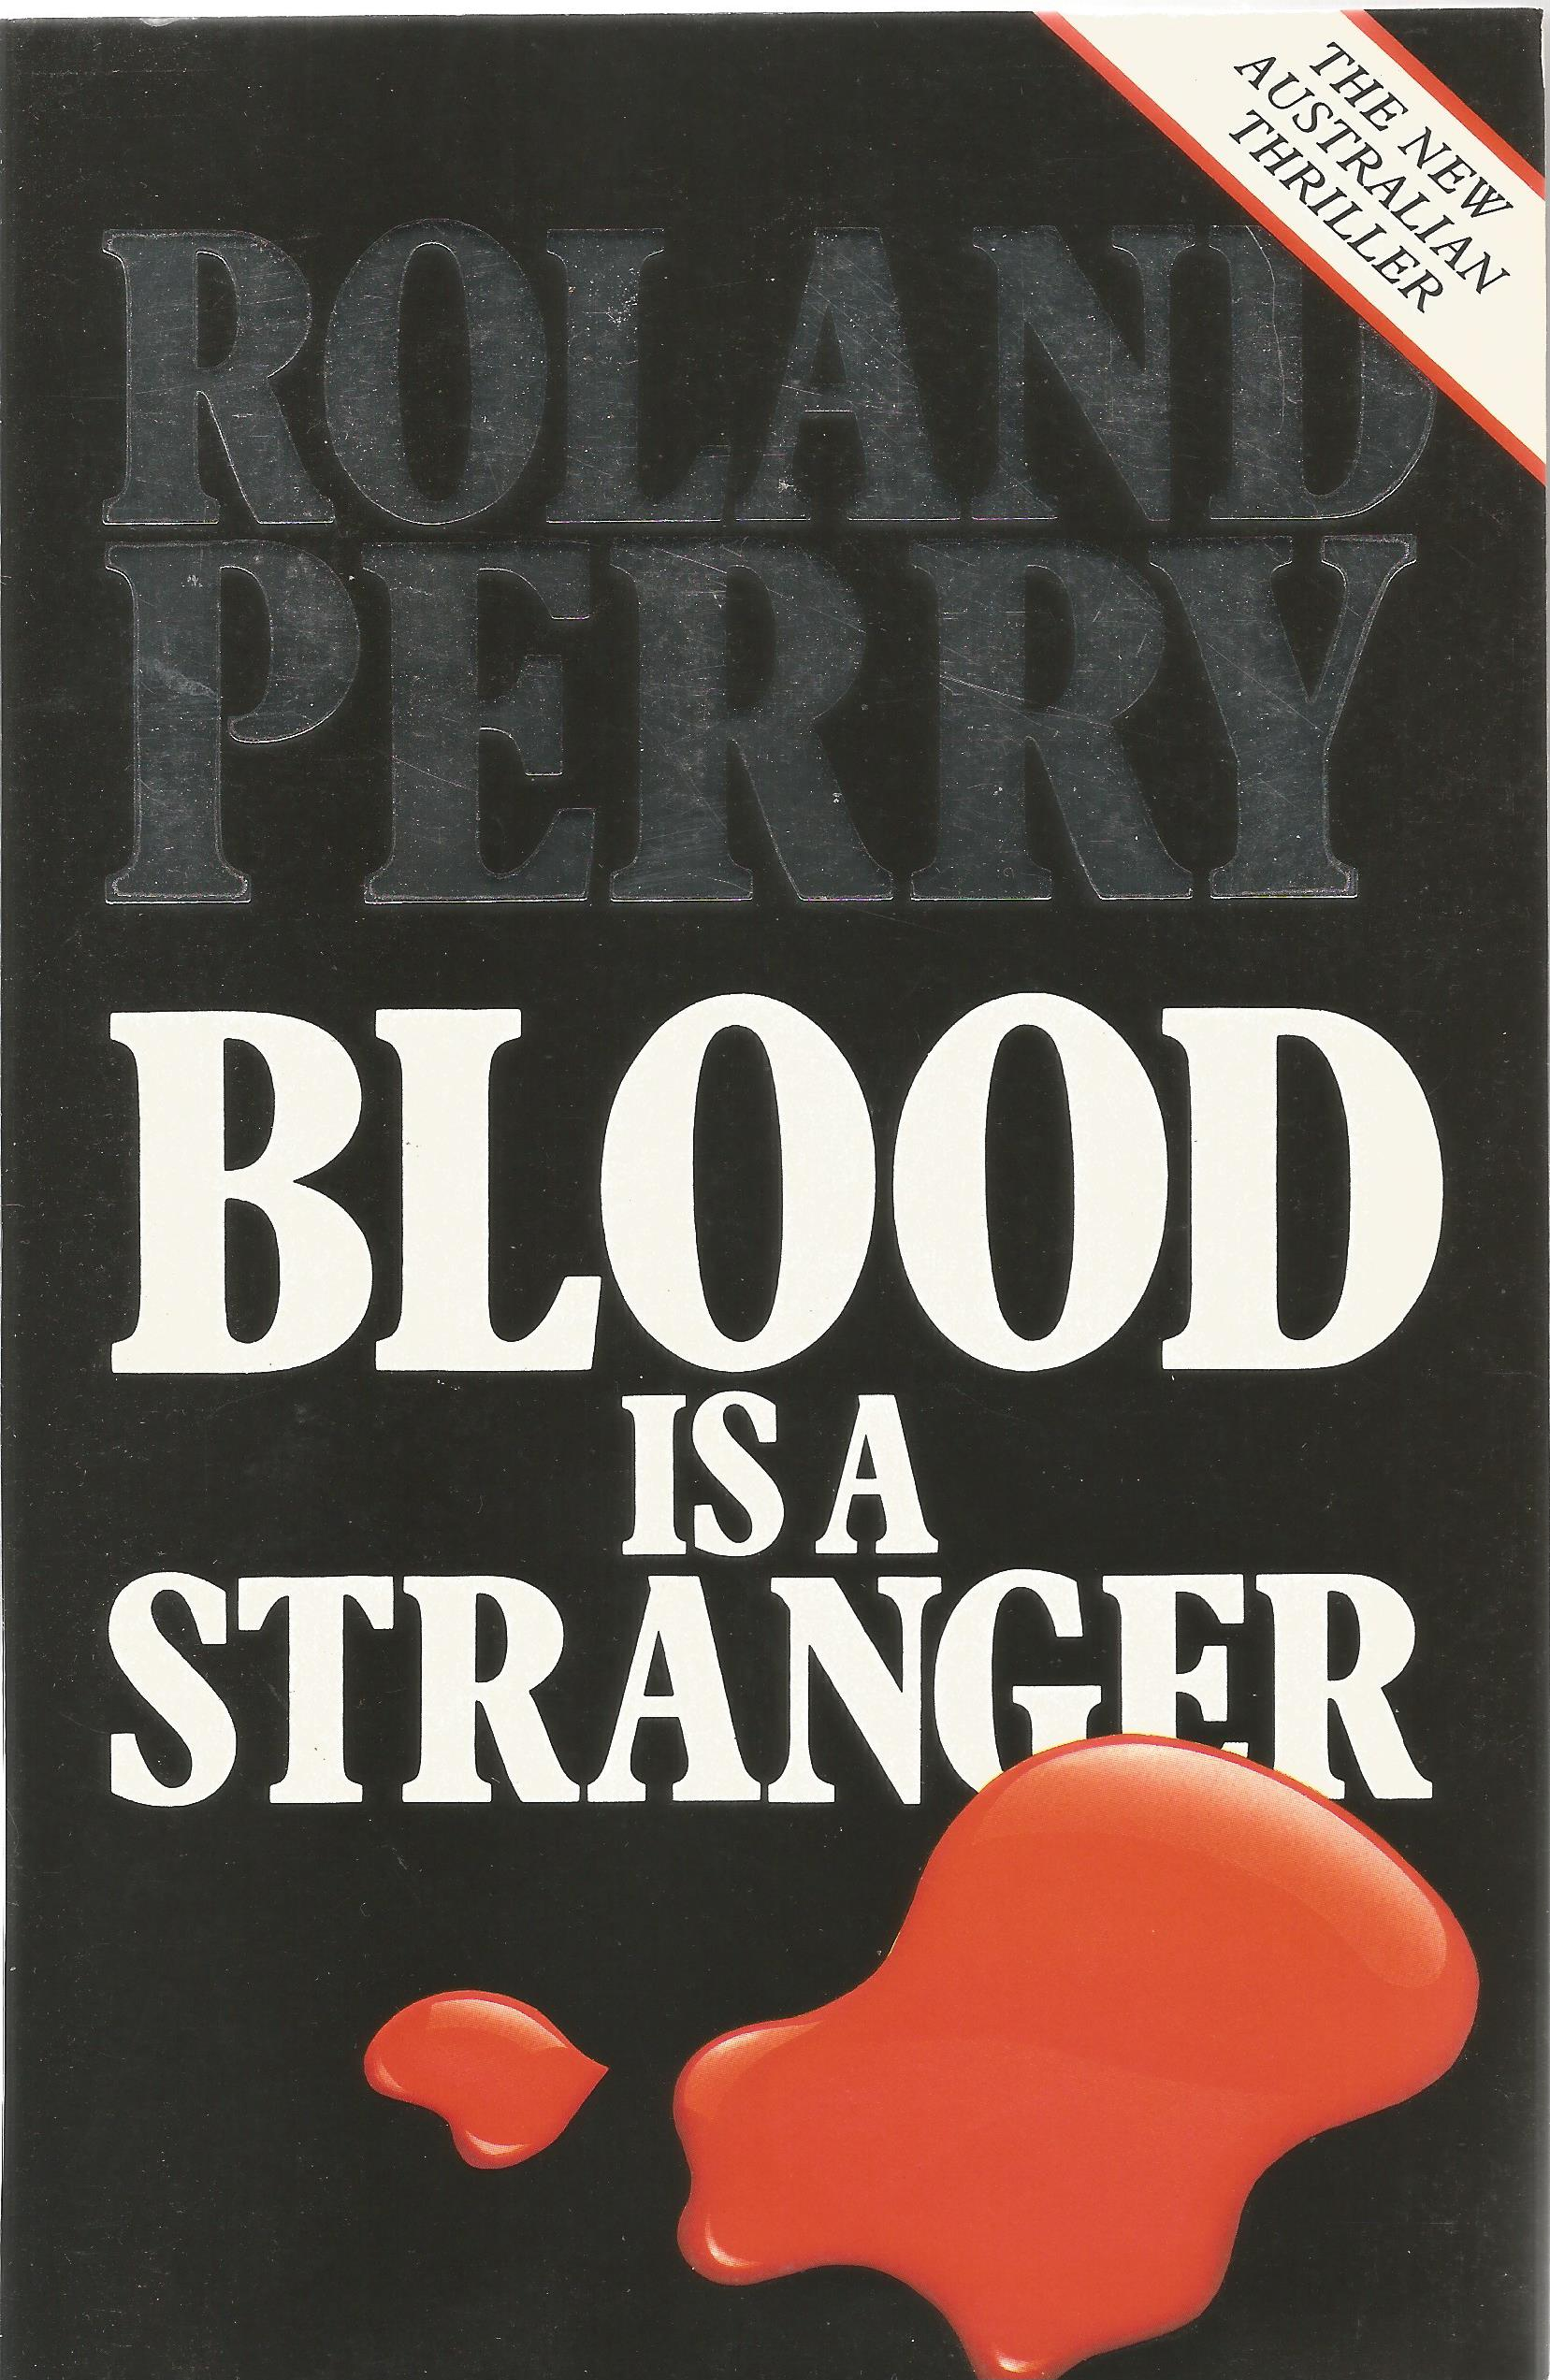 Rowland Perry Paperback Book Blood is a Stranger signed by the Author on the First Page and dated